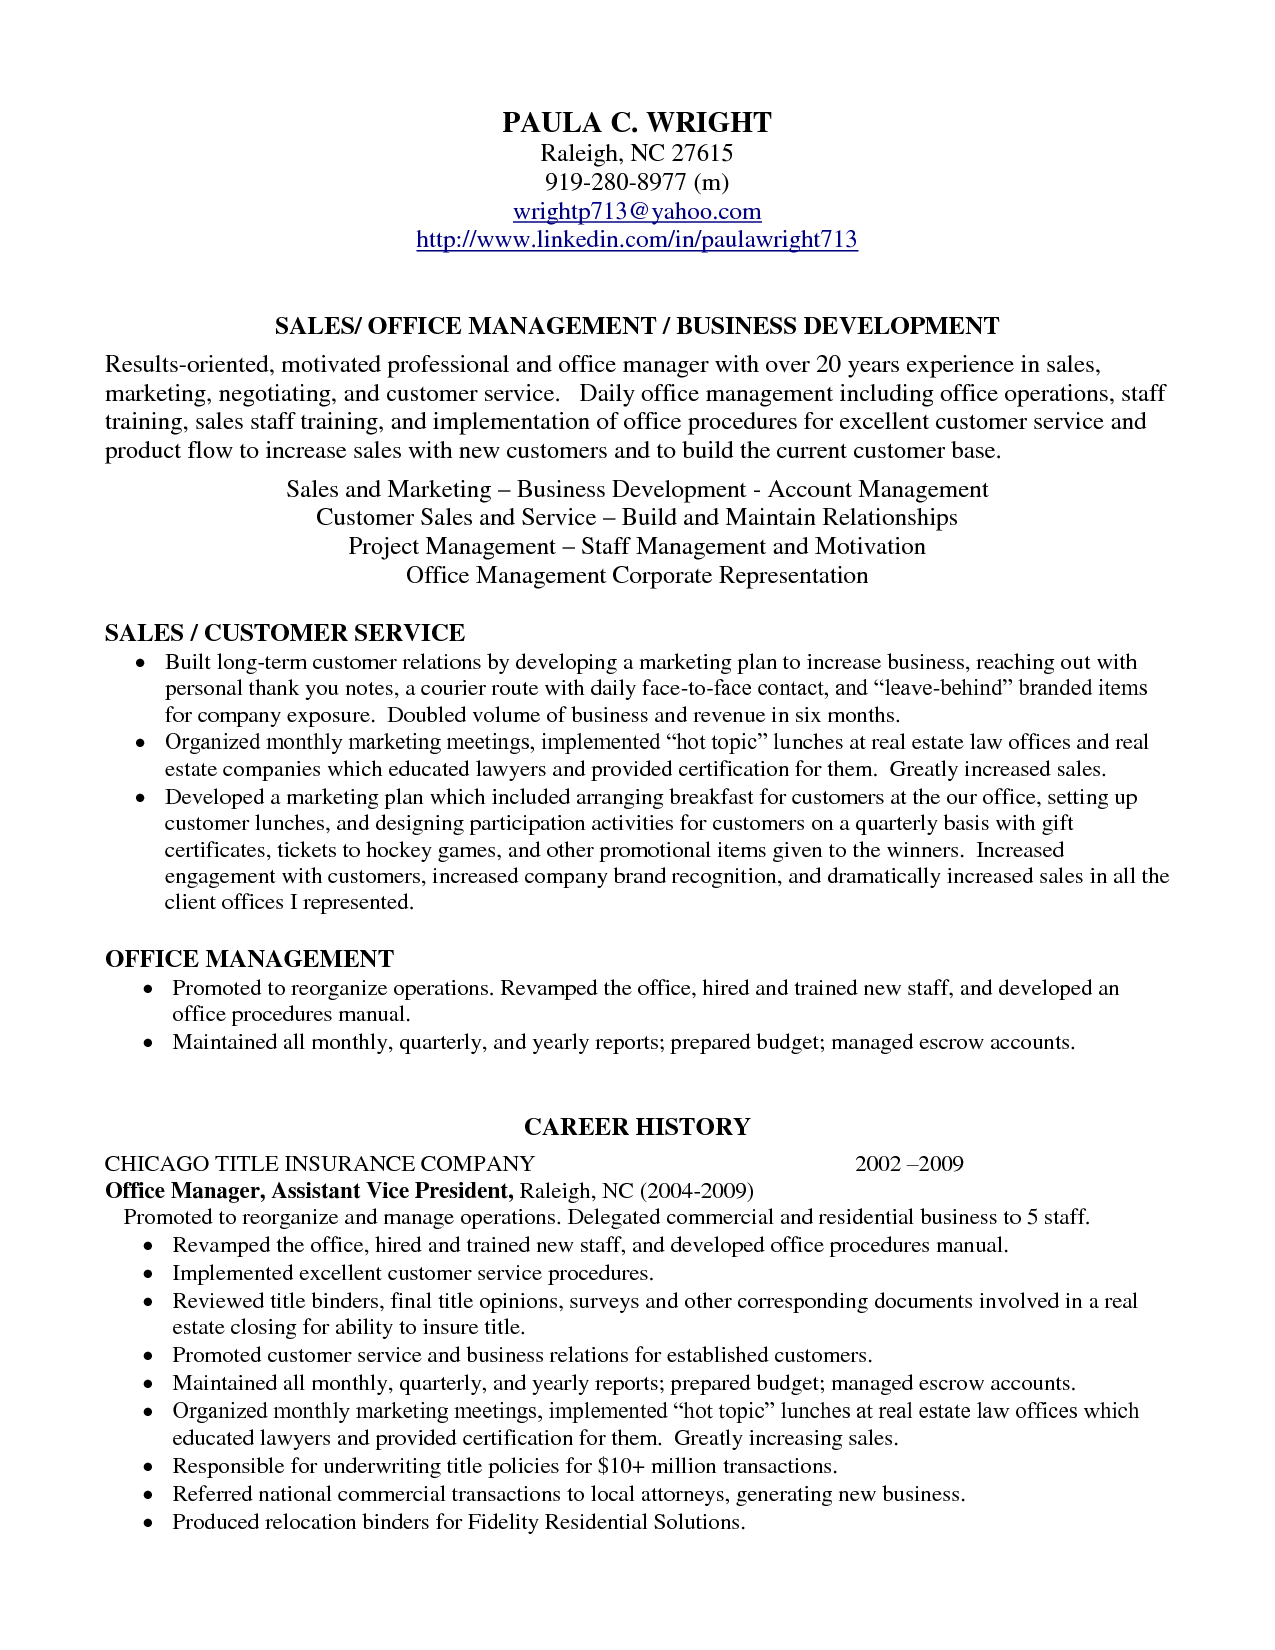 Marketing Resume Summary Statement Examples Professional Profile Resume Examples Resume Professional